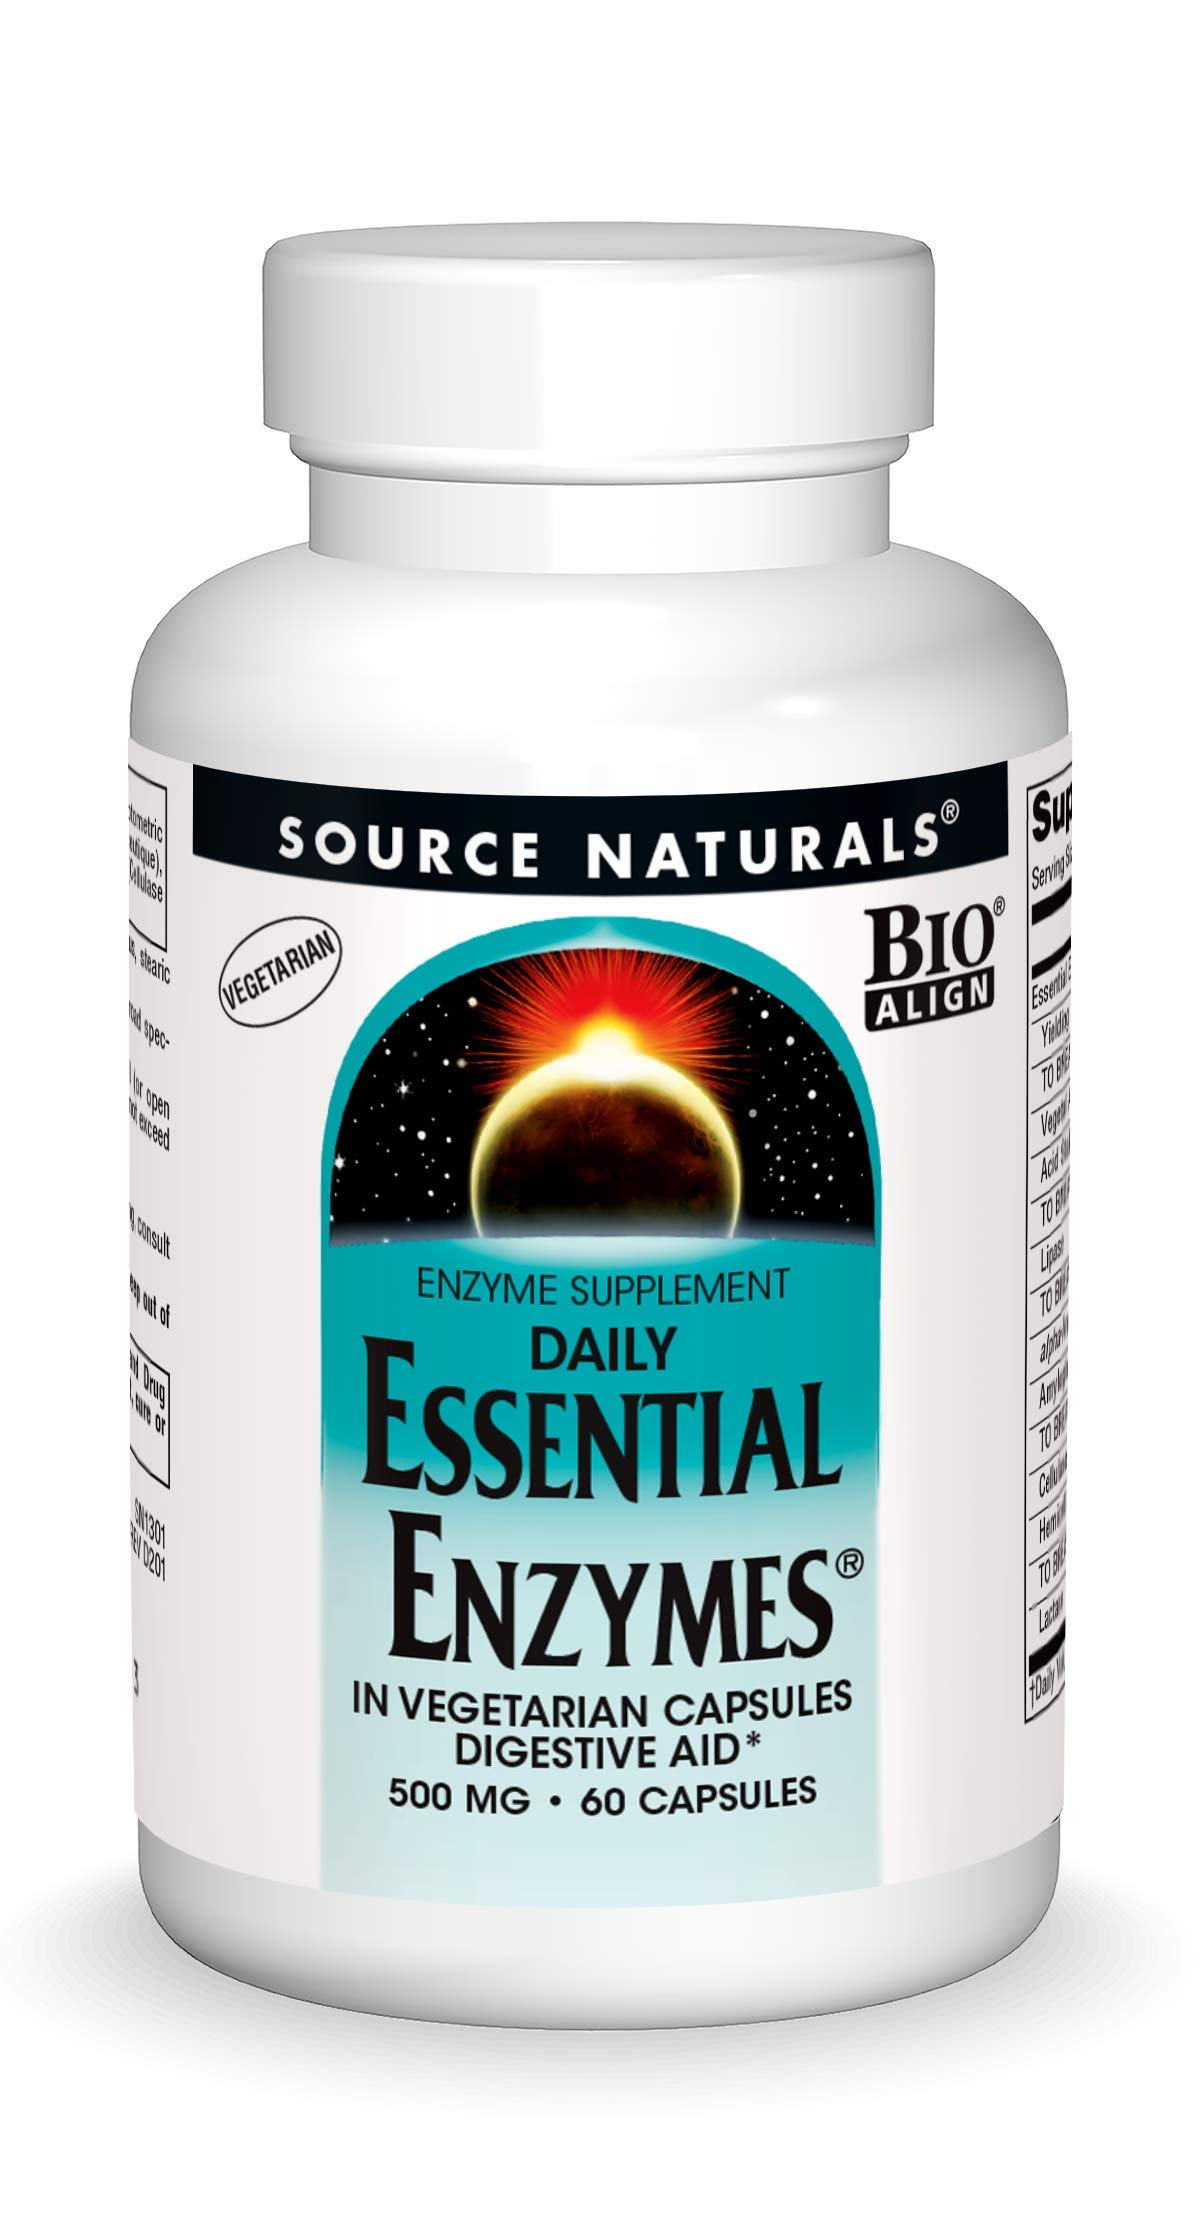 Source Naturals Essential Enzymes 500mg Bio-Aligned Multiple Enzyme Supplement Herbal Defense for Digestion, Gas, Constipation & Bloating Relief - Supports Immune System - 60 Vegetarian Capsules